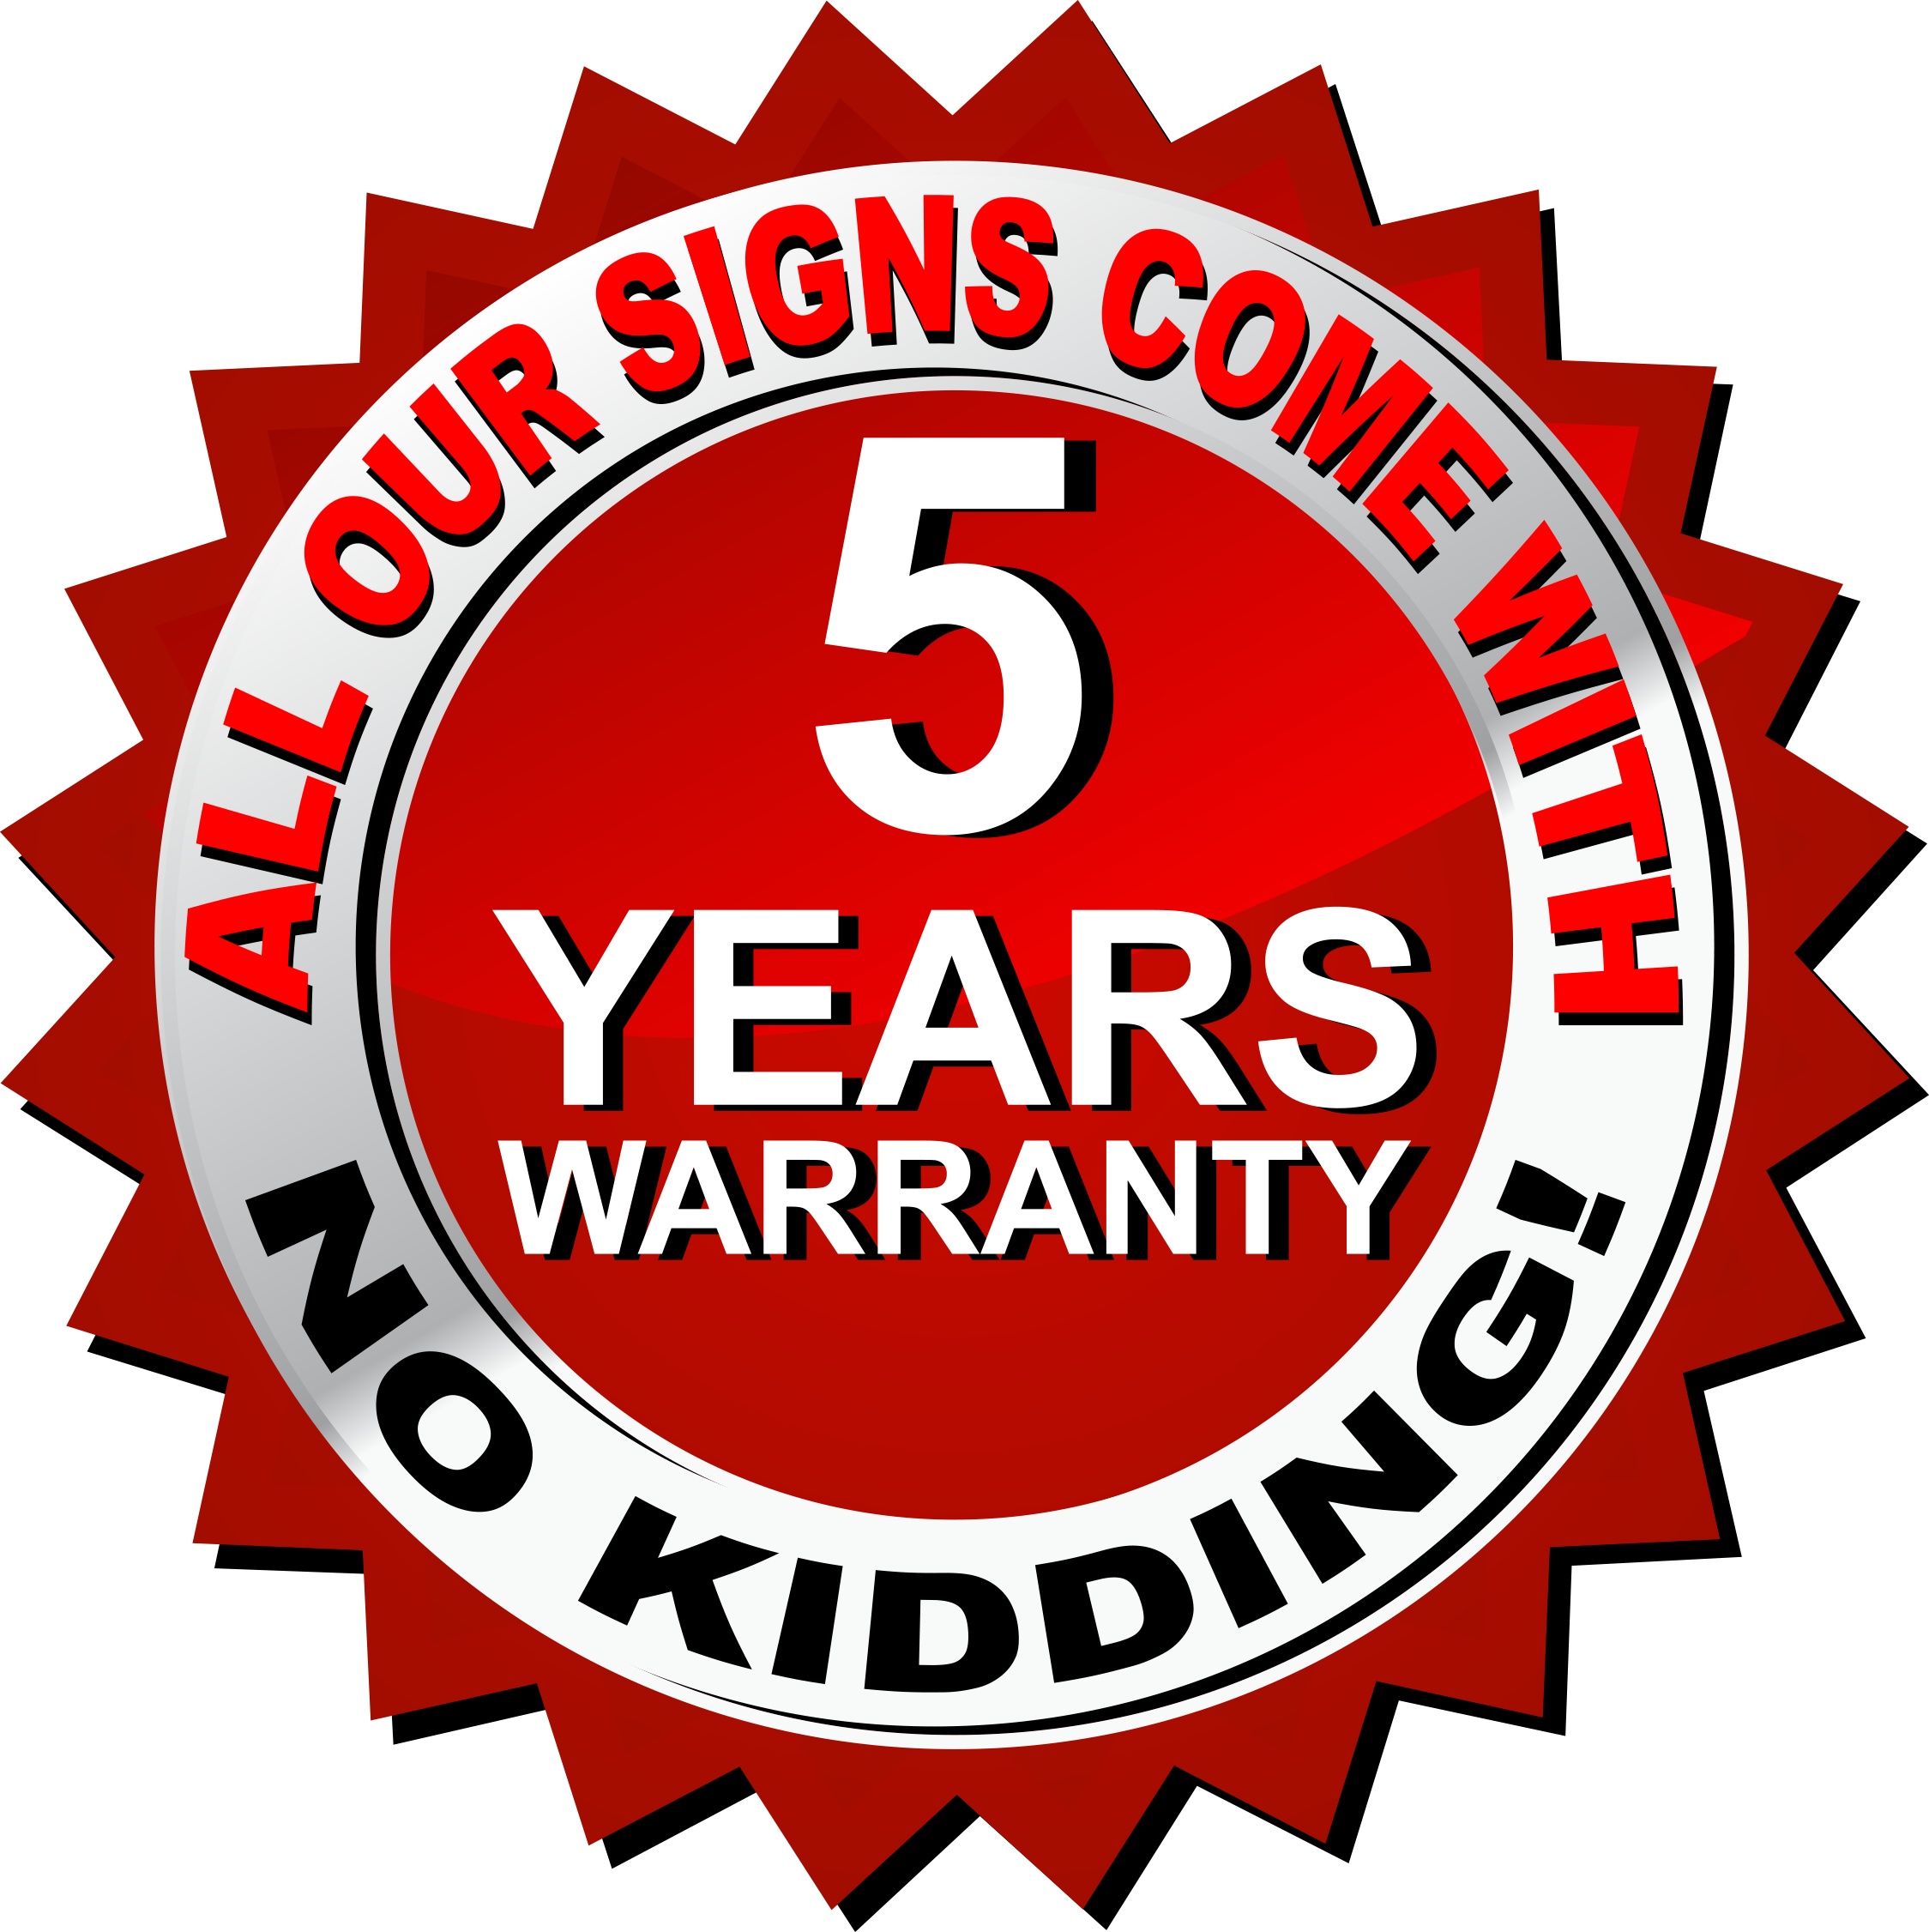 5-YEARS-WARRANTY-SEAL-(1)-(1)